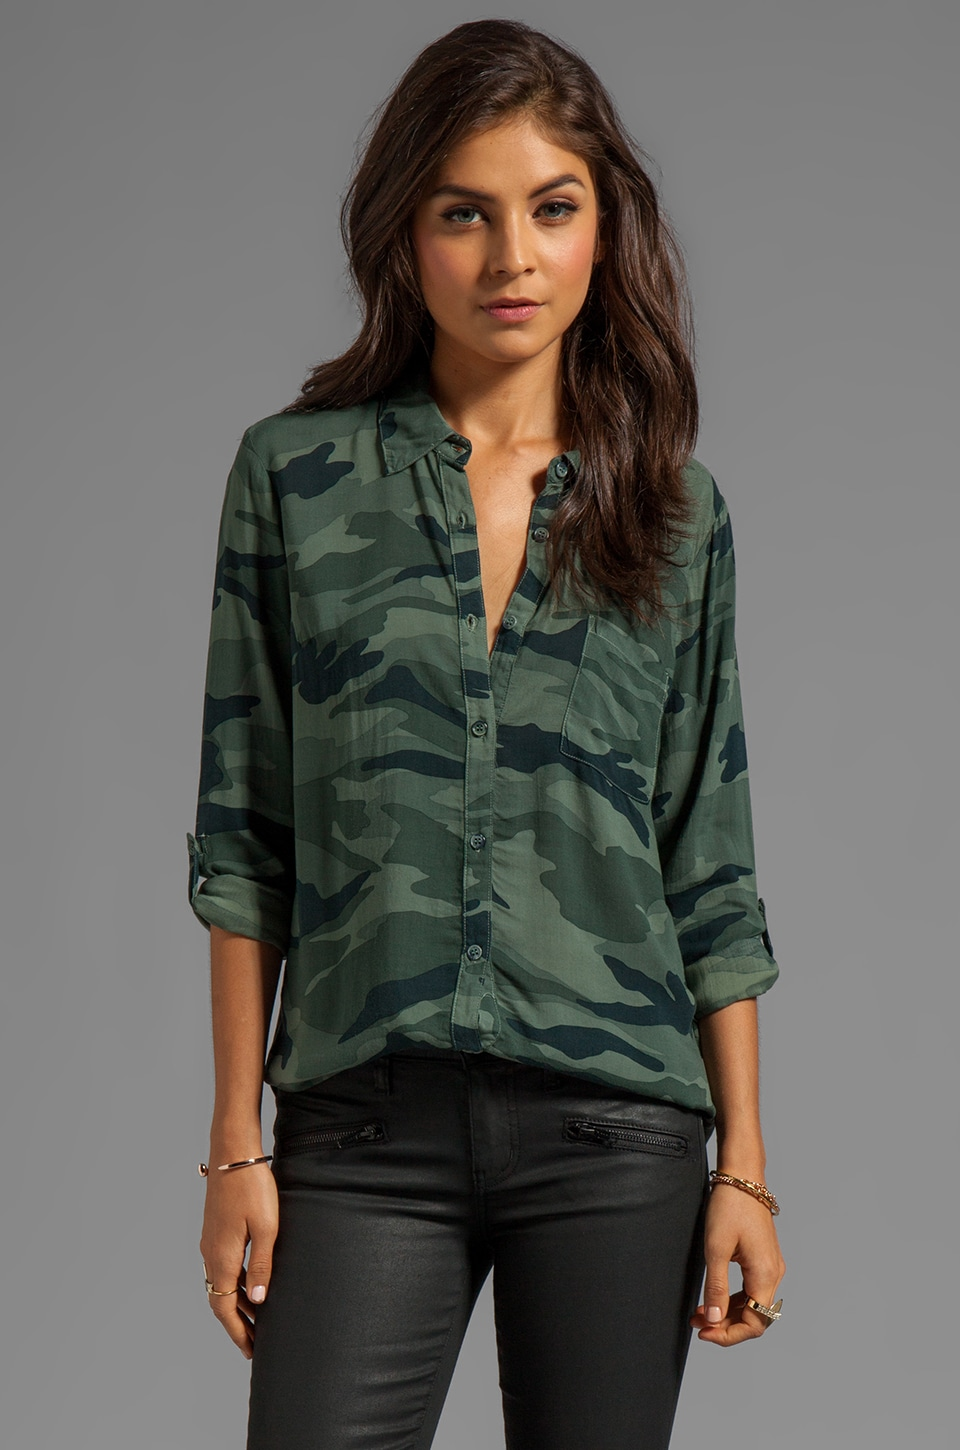 Splendid Camo Collard Top in Camo Green